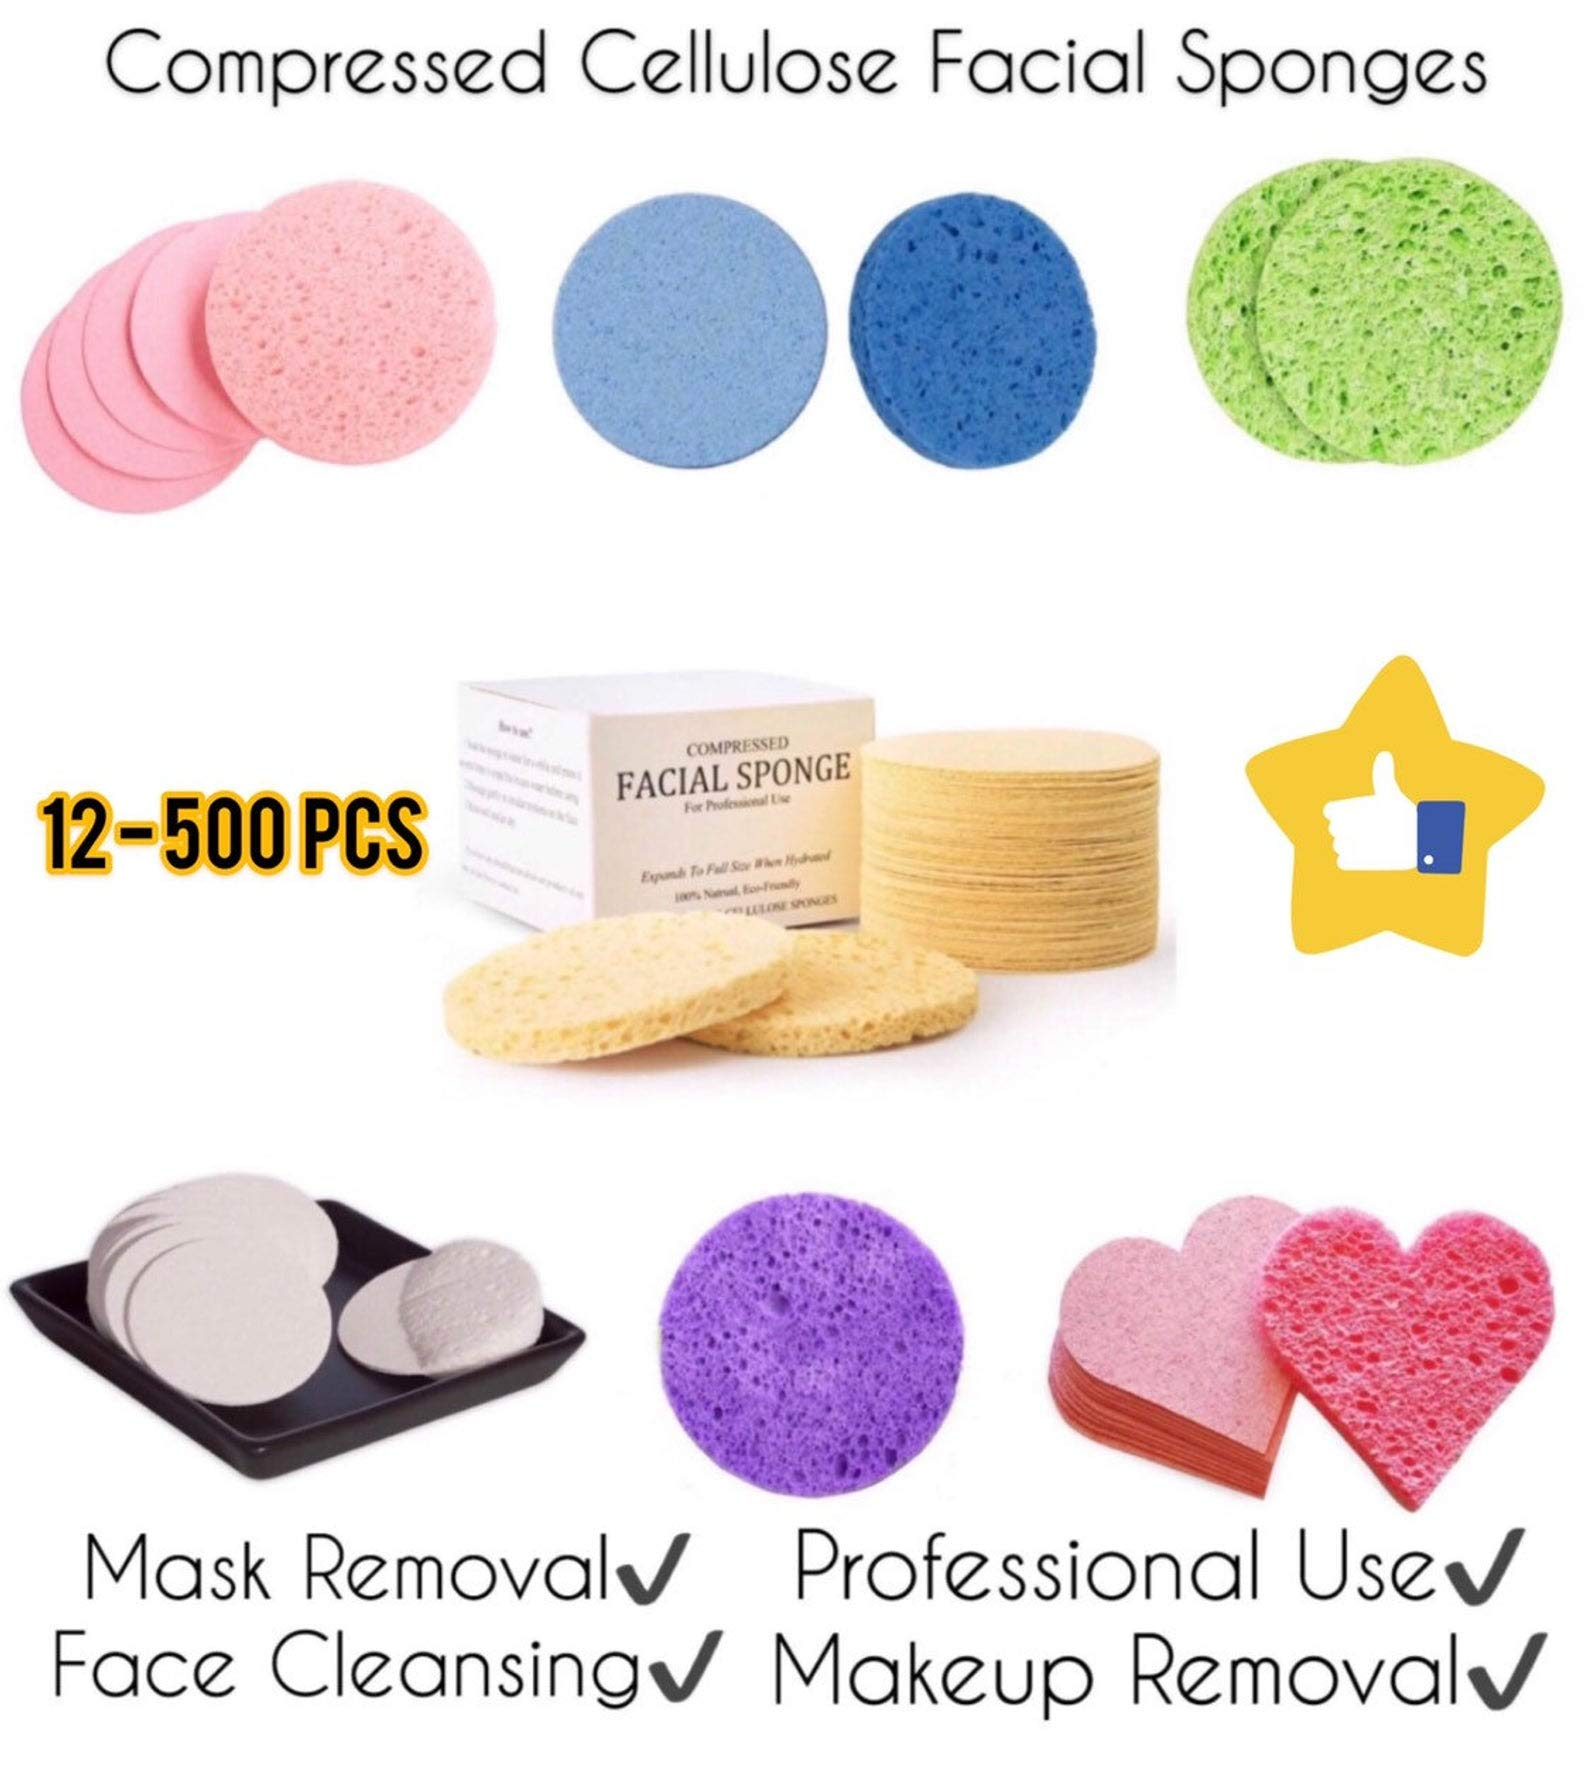 Face Sponges Compressed Cellulose Natural (Facial Cleansing Sponges) Makeup Removal Pads Bulk Sizes (300, Pink Round) by Glowing Skin